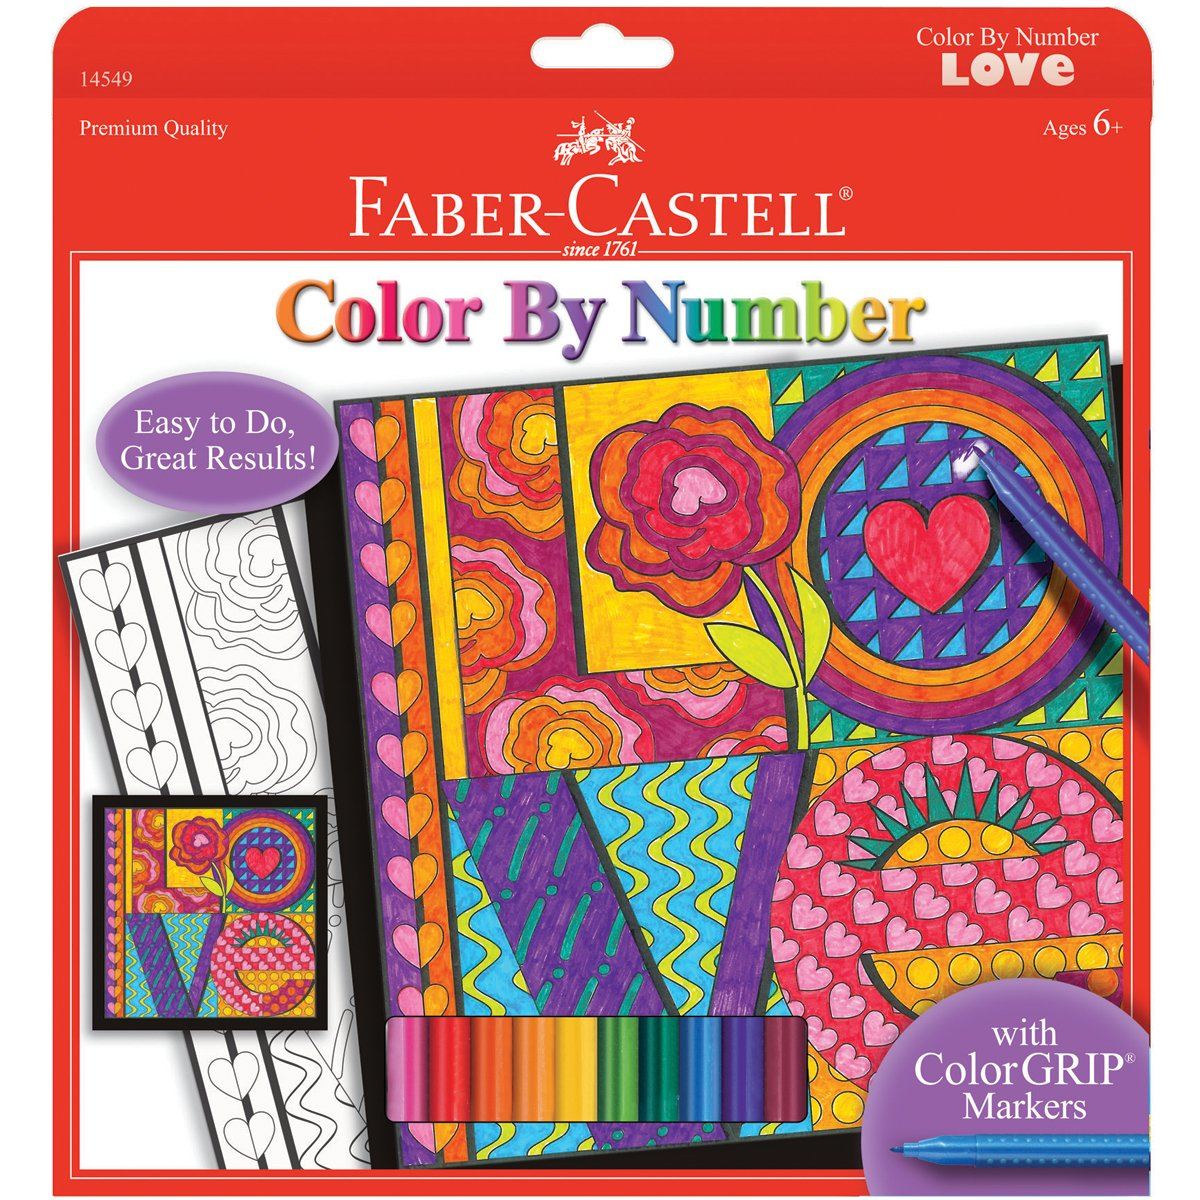 Faber-Castell - Color By Number Love Art Kit - Premium Kids Crafts